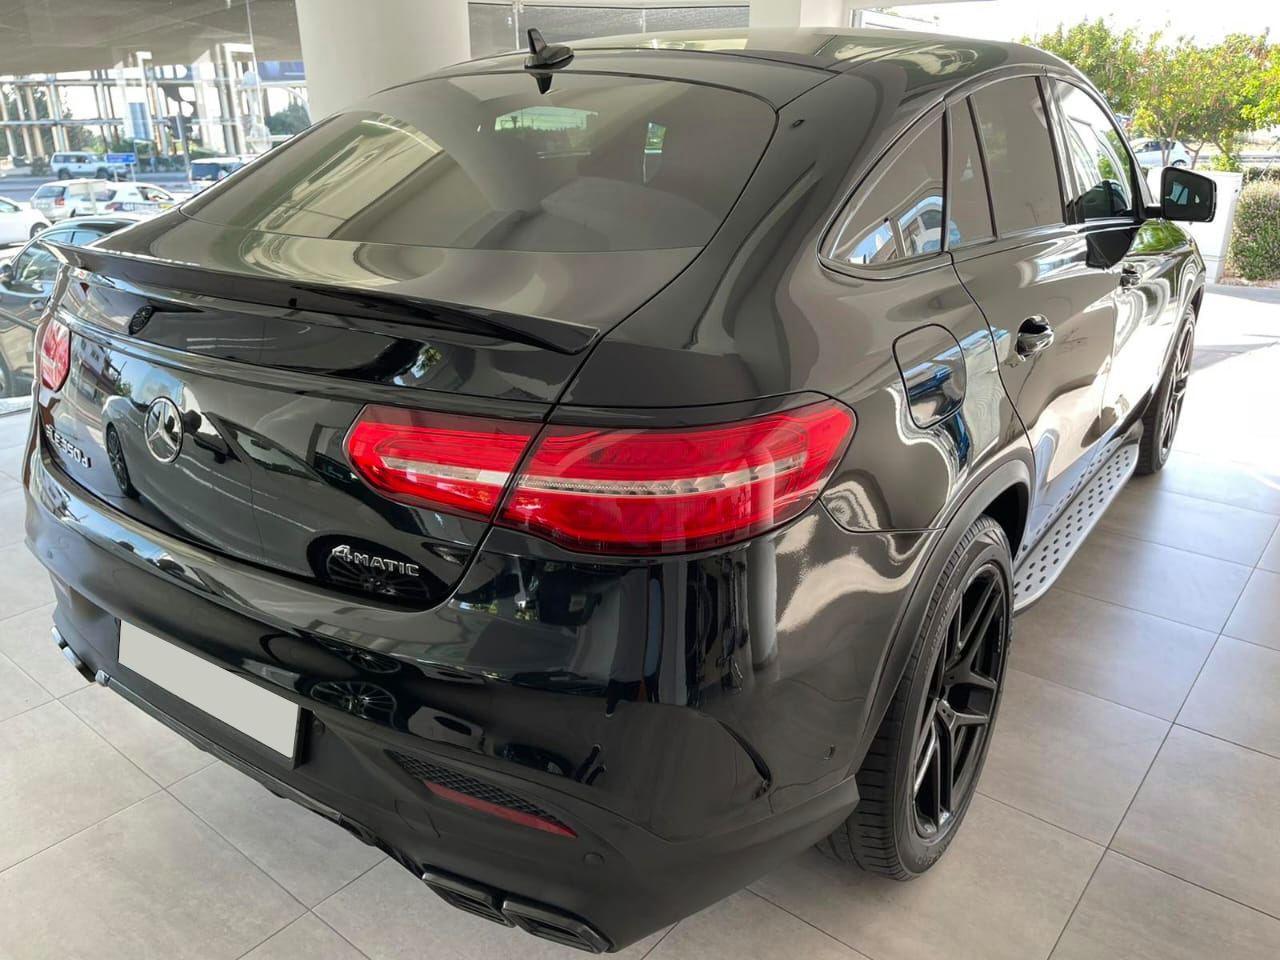 MERCEDES BENZ AMG GLE 350D COUPE 4MATIC